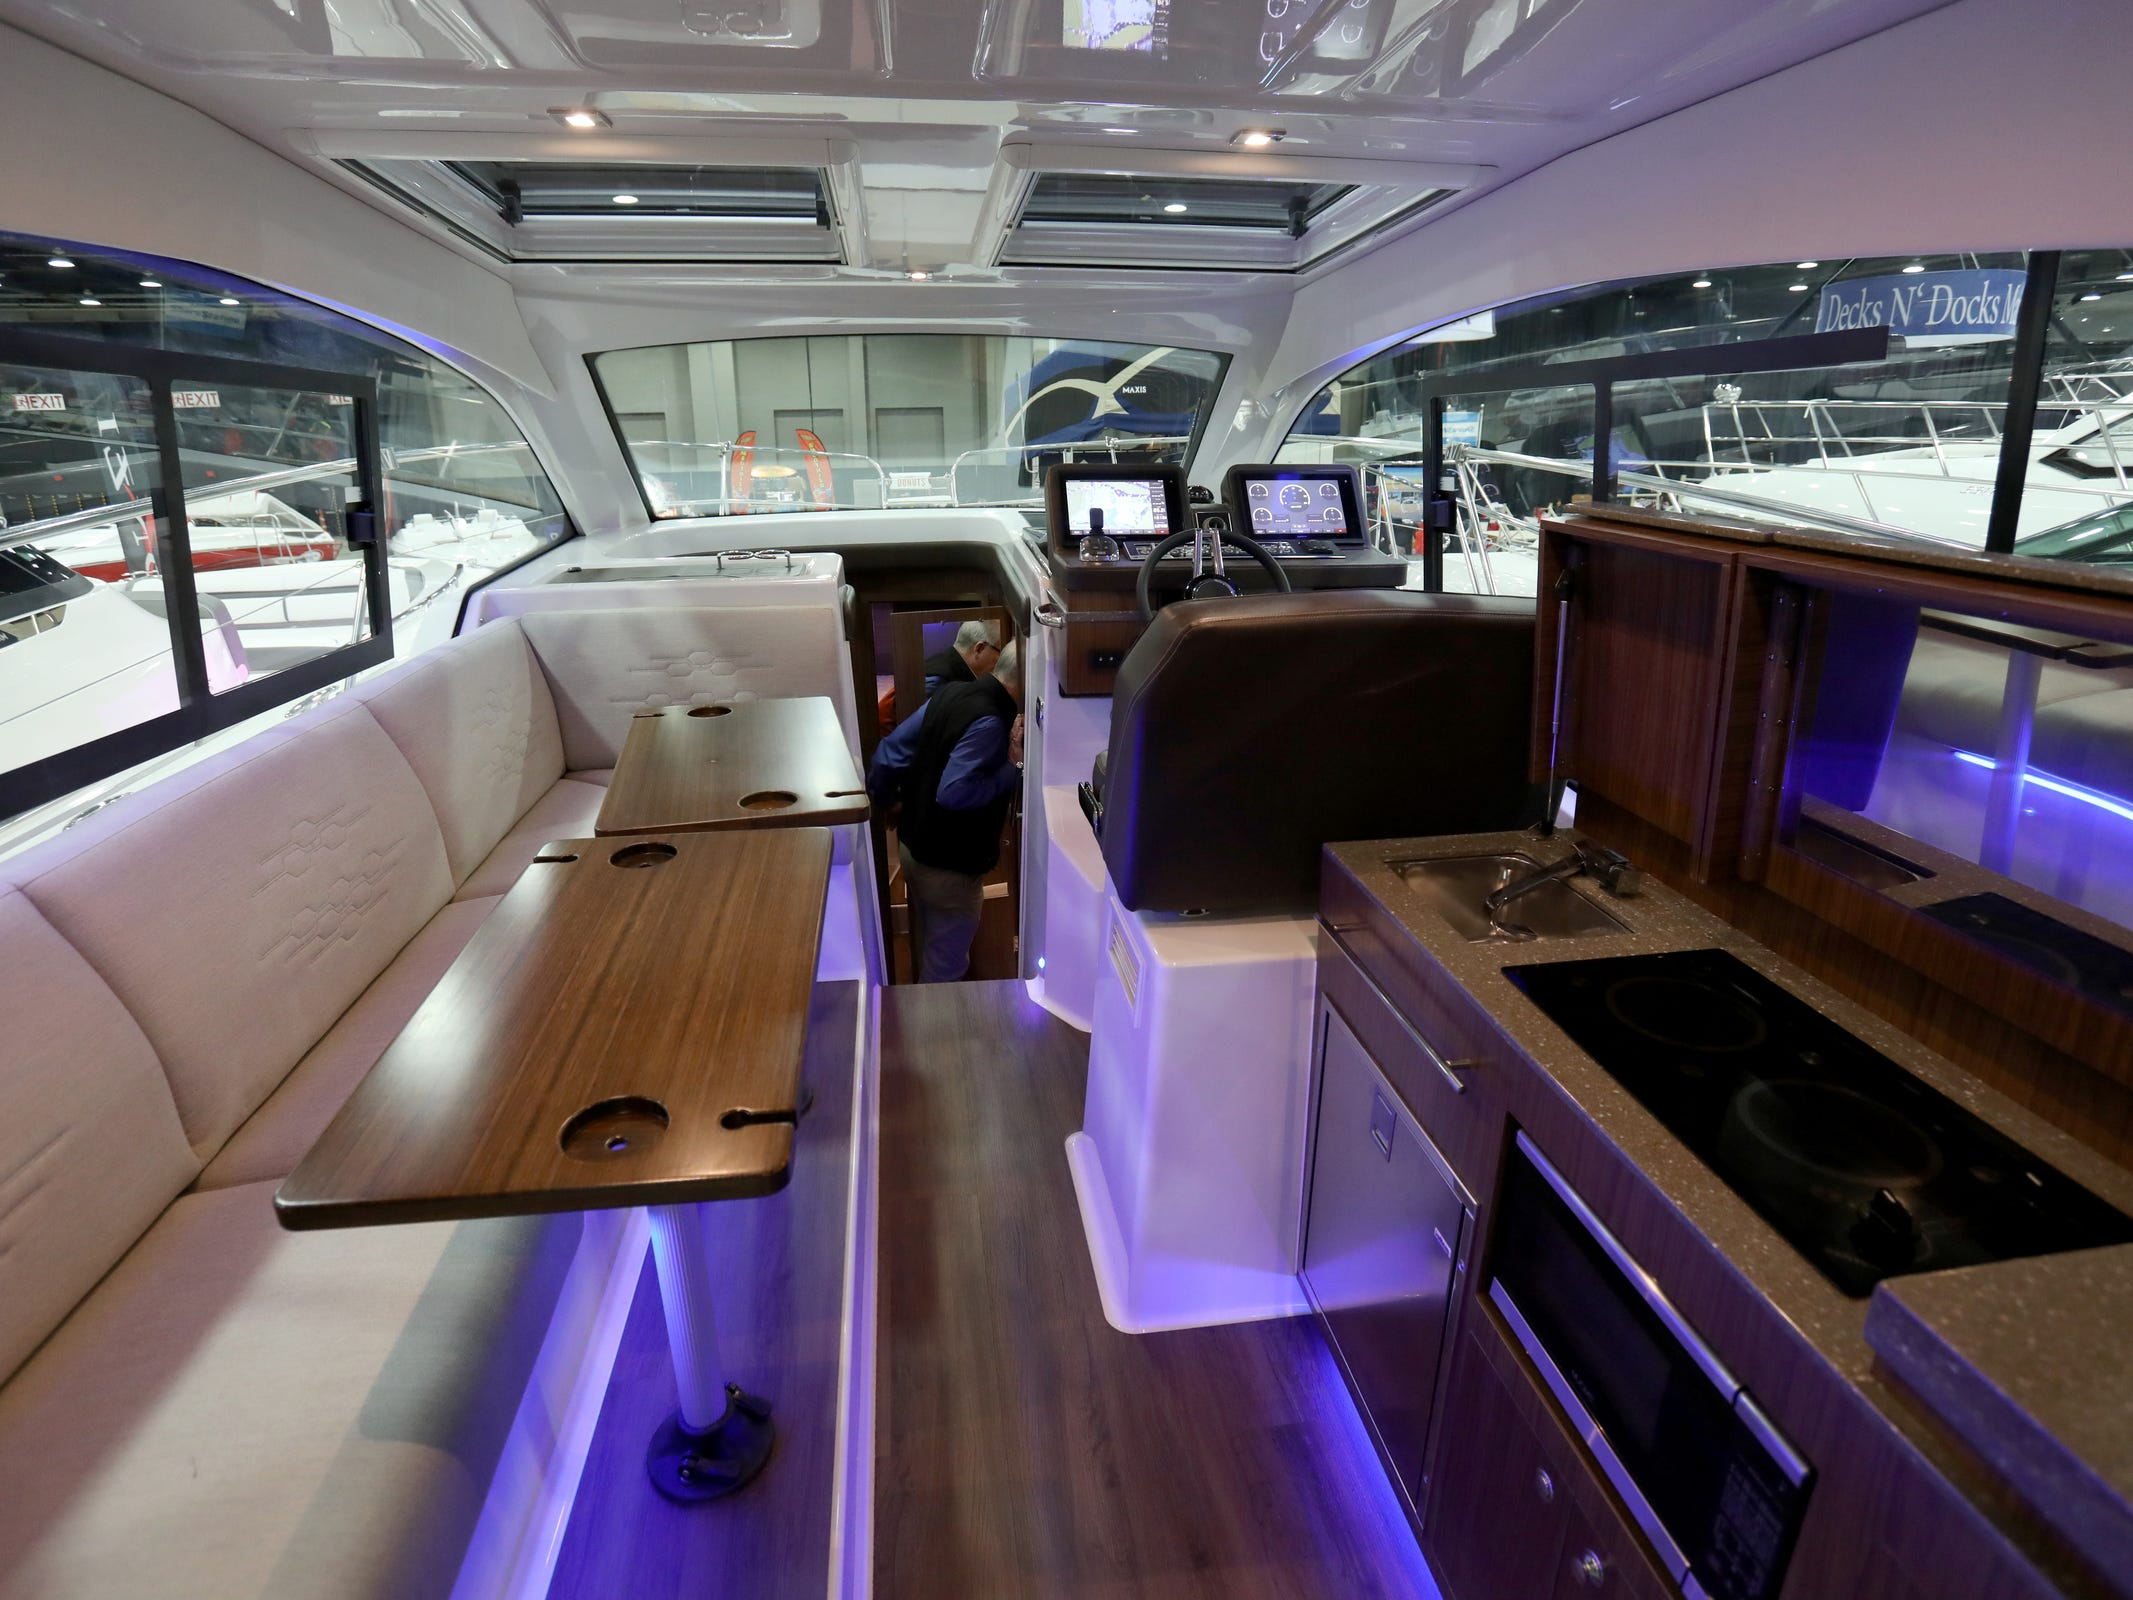 The interior view of the Tiara 39 foot Coupe for sale at $695,000 at the Skipper Buds display during the week long Detroit Boat Show at Cobo Center in Detroit on Saturday, February 16, 2019.